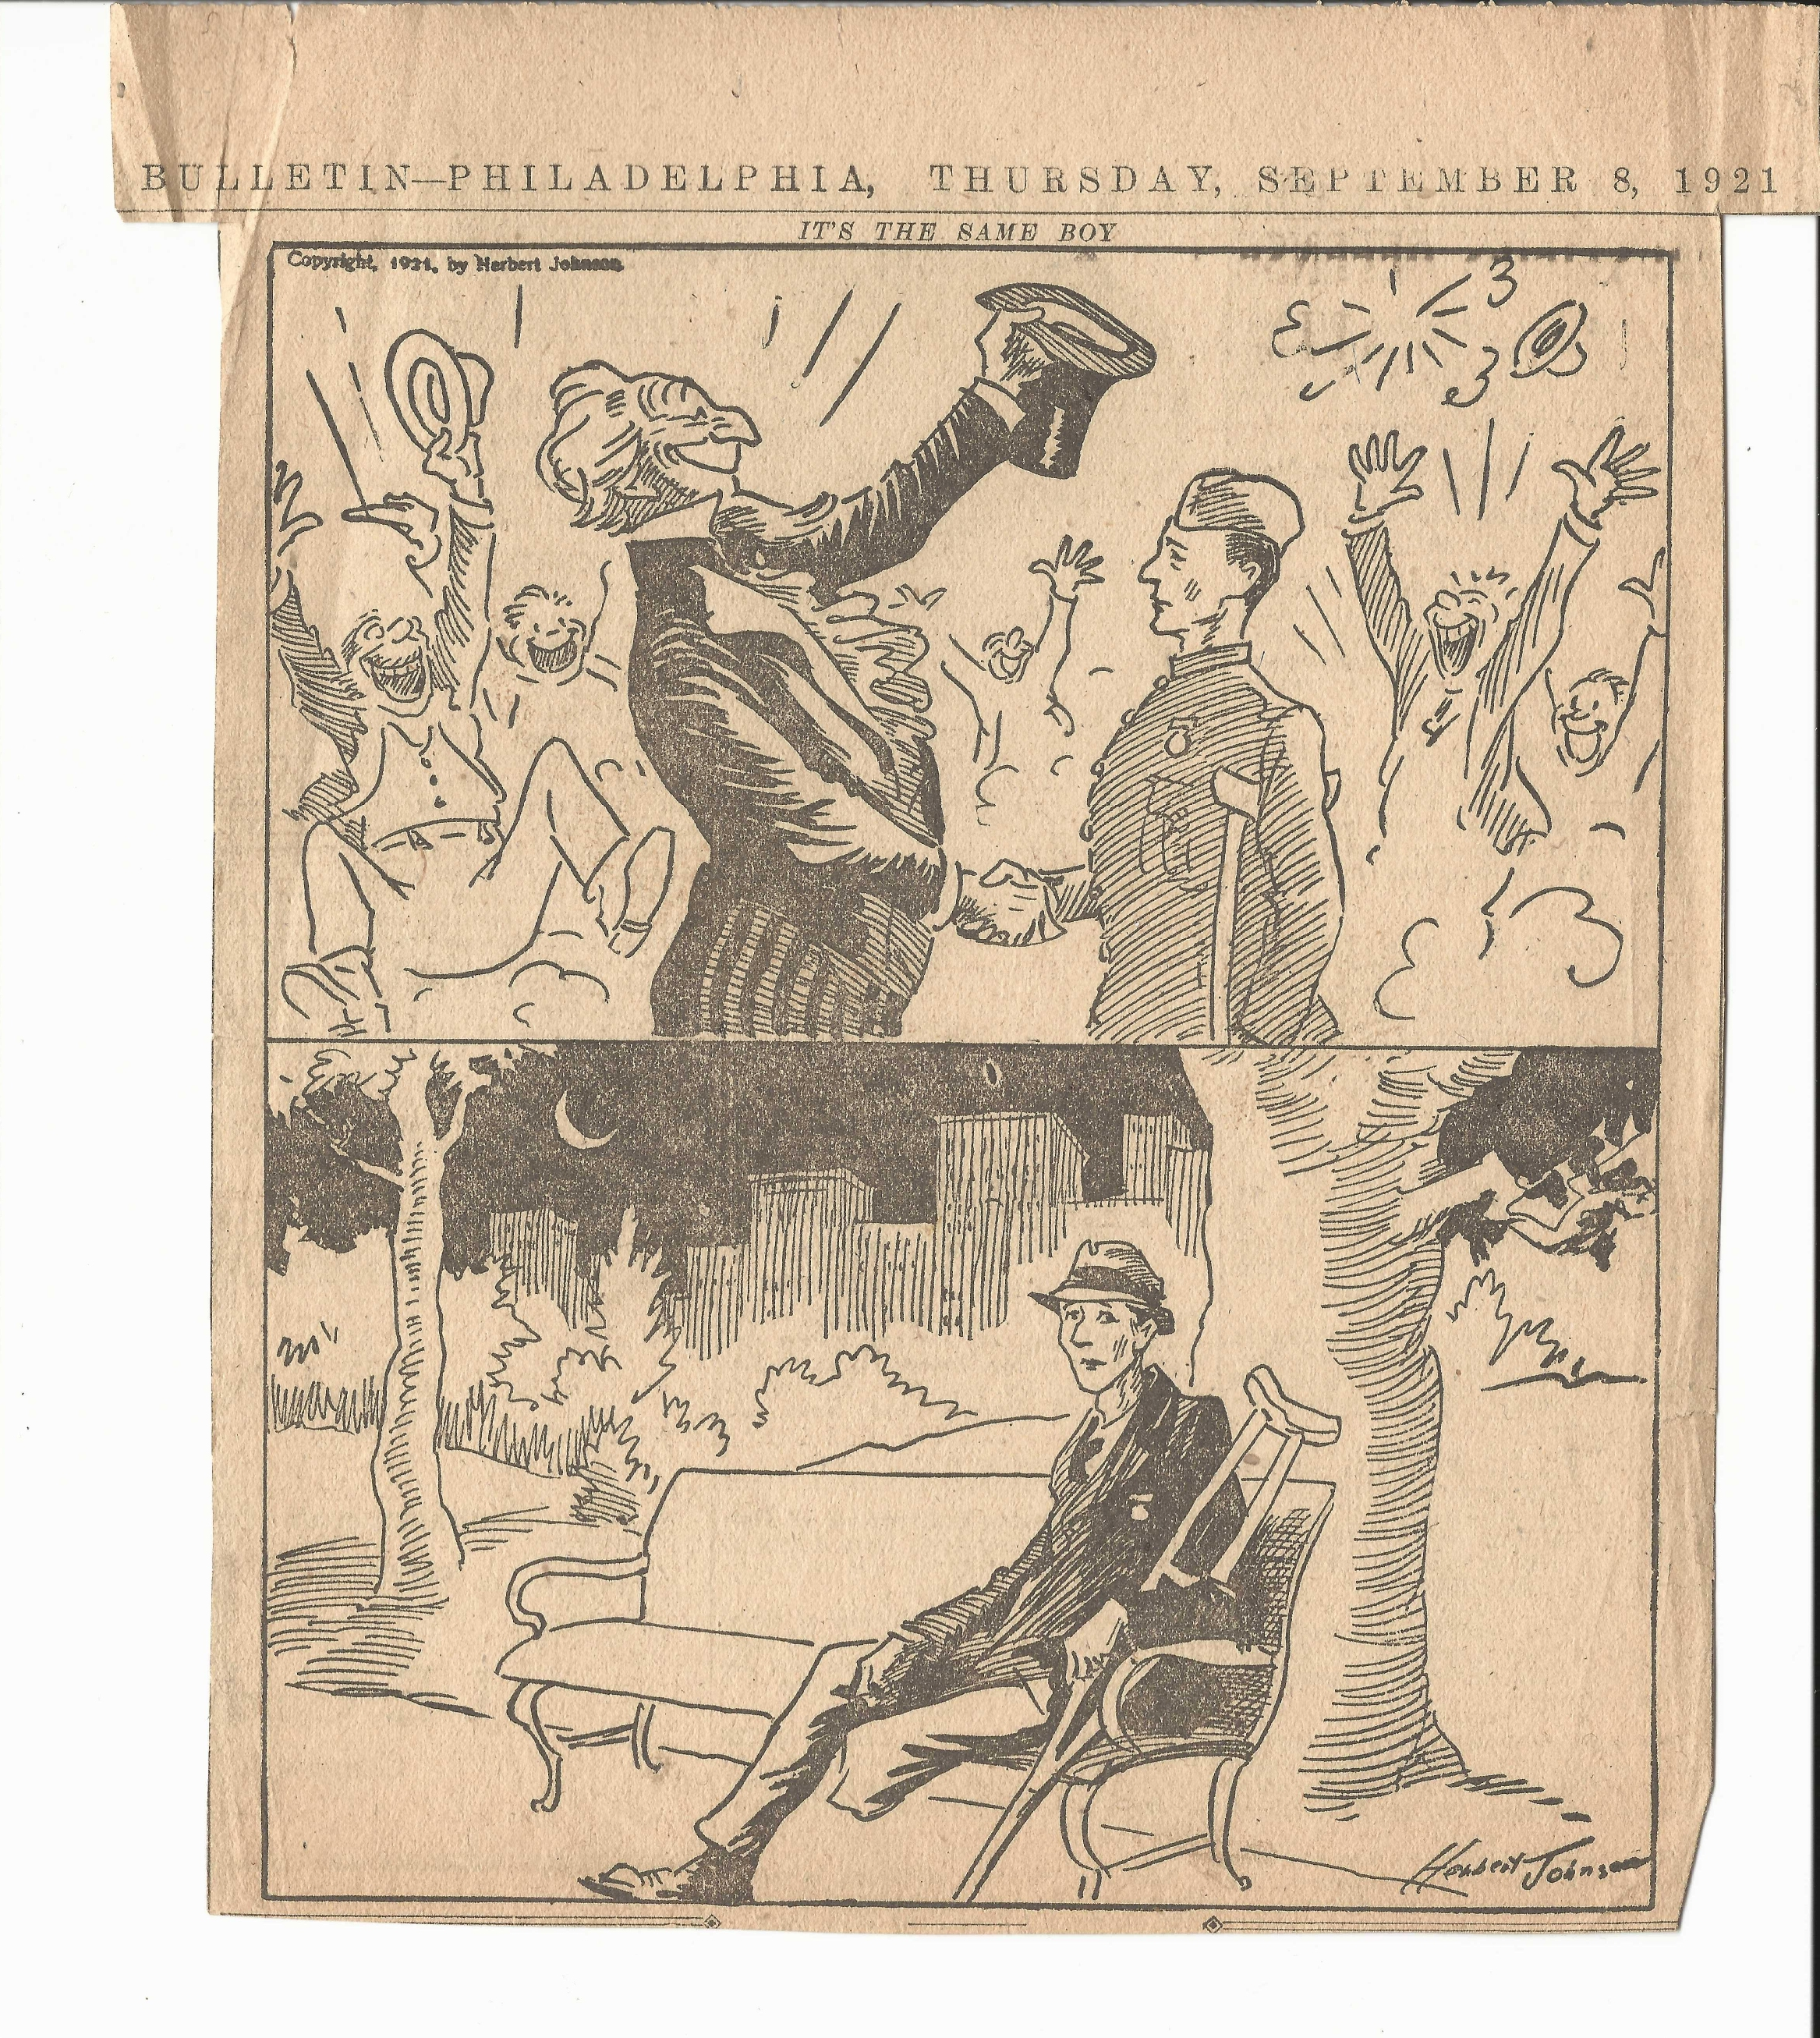 Philadelphia Bulletin September 8, 1921 Cartoon - 300 DPI